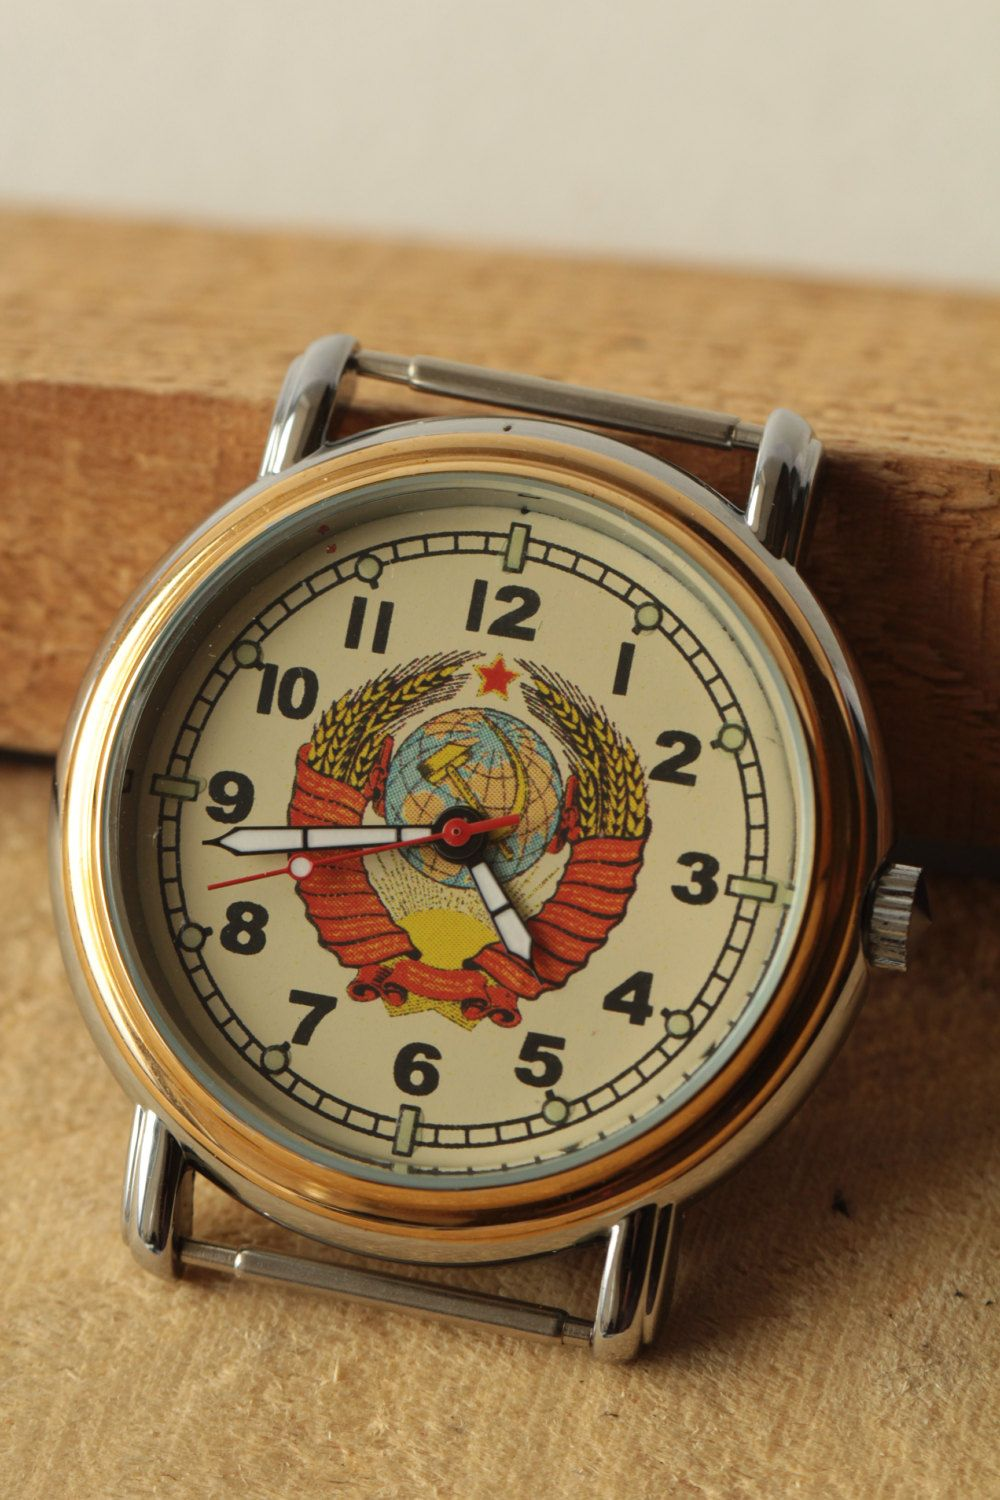 RAKETA Mens Wrist Watch Coat of arms USSR Russian brand cal. 2614H Russian  brand .Gift for father e5aaf4539a3